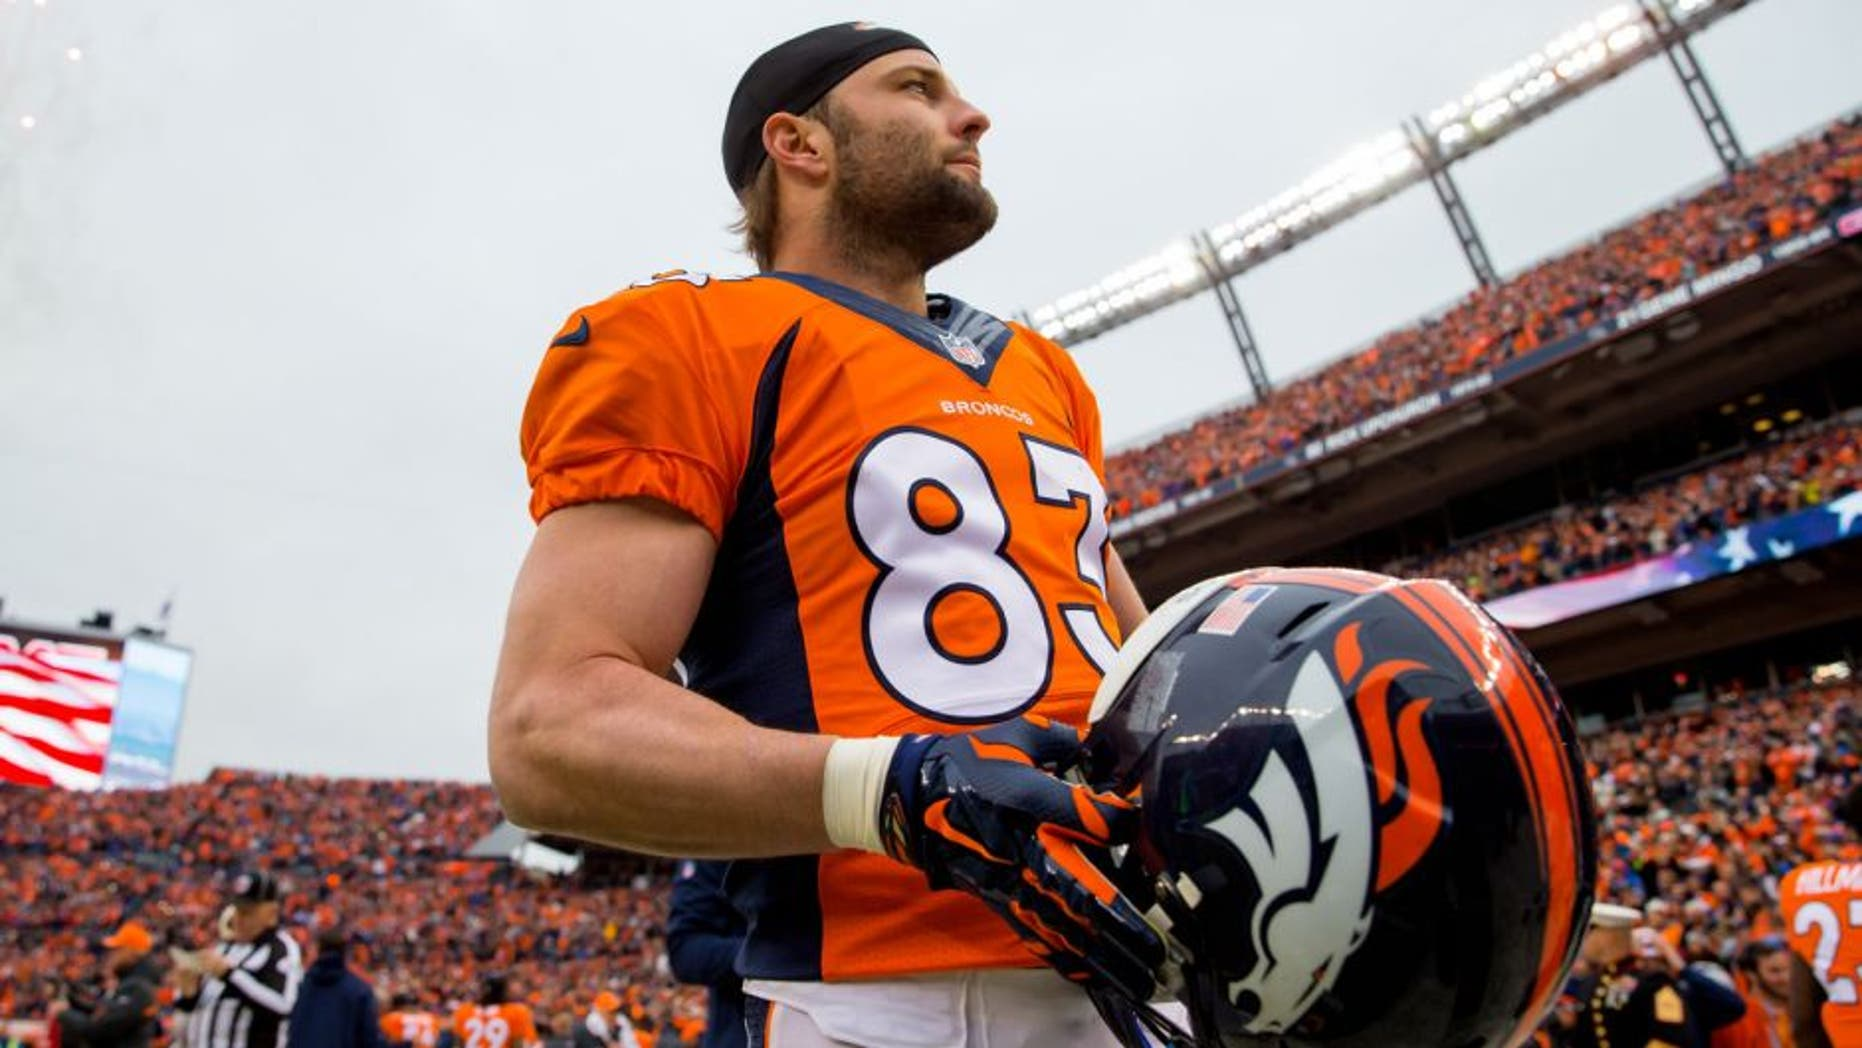 Jan 11, 2015; Denver, CO, USA; Denver Broncos wide receiver Wes Welker (83) against the Indianapolis Colts in the 2014 AFC Divisional playoff football game at Sports Authority Field at Mile High. The Colts defeated the Broncos 24-13. Mandatory Credit: Mark J. Rebilas-USA TODAY Sports